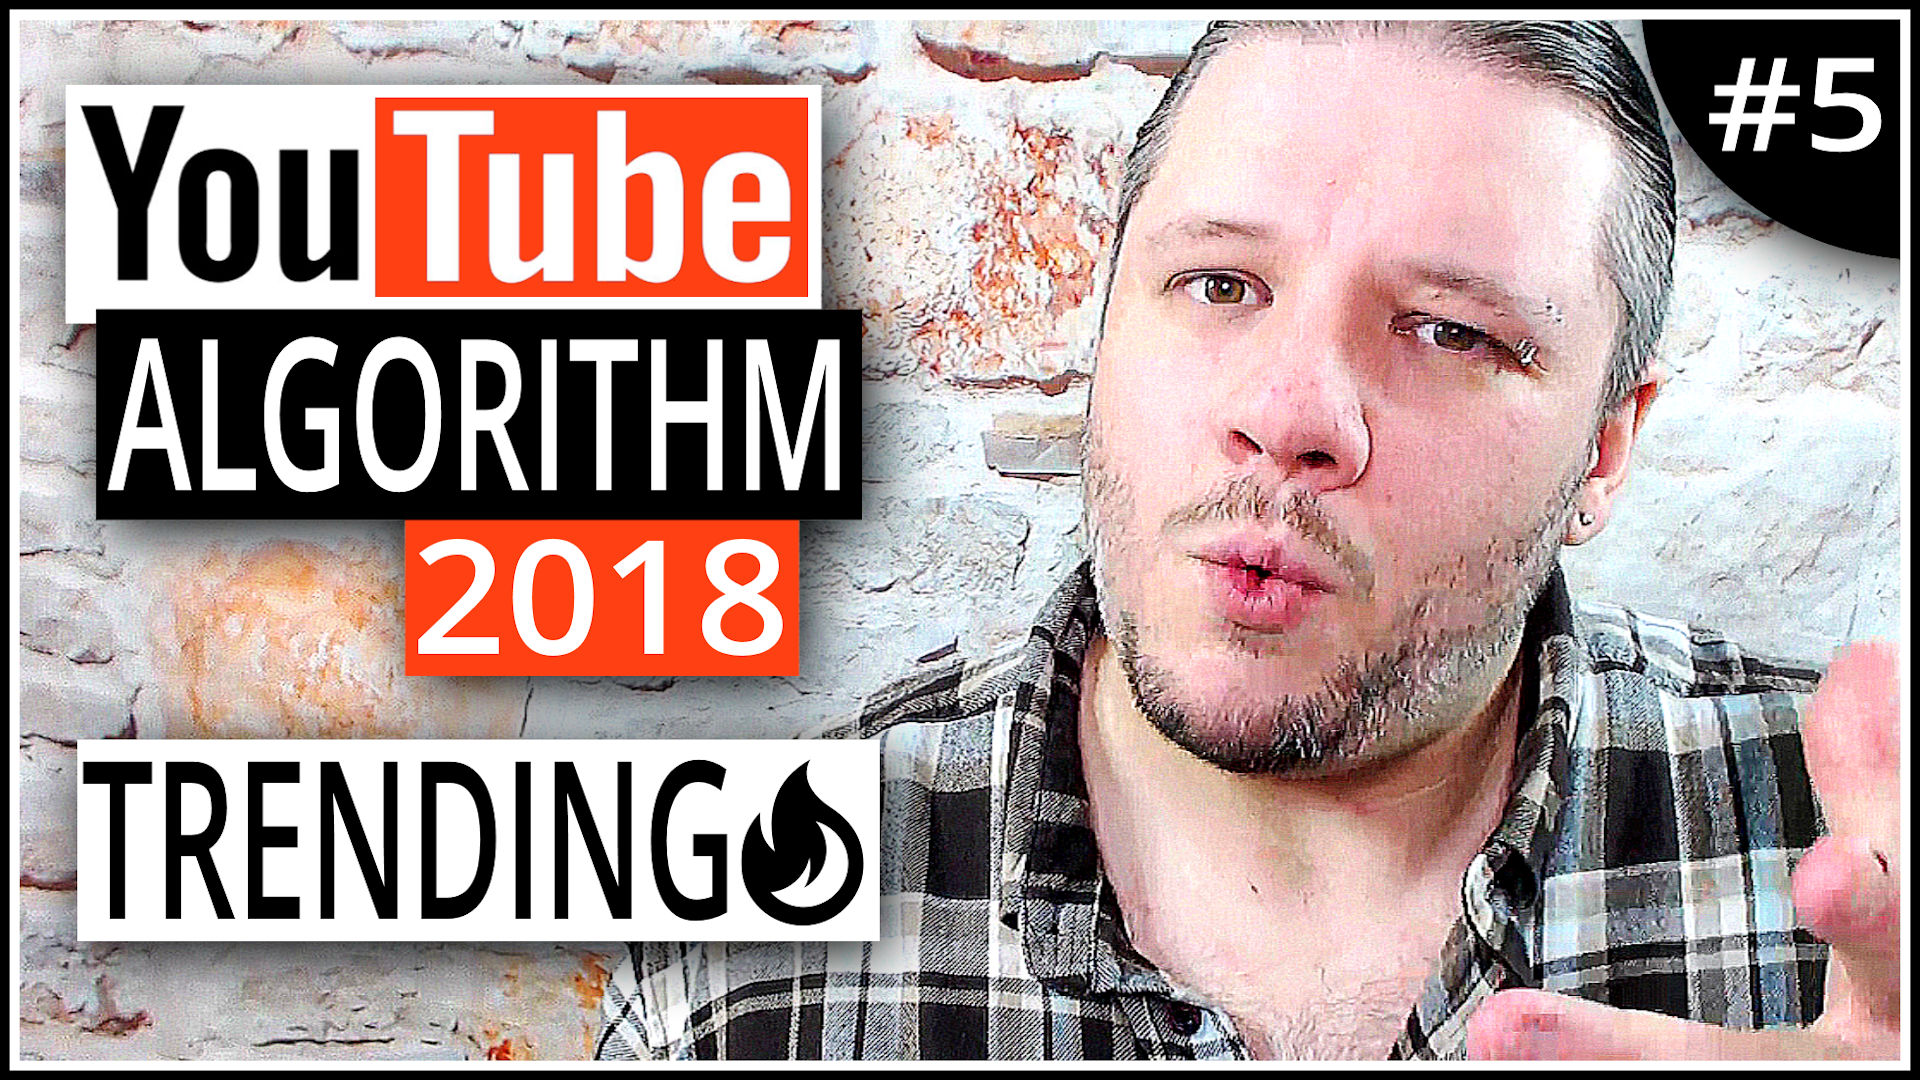 alan spicer,alanspicer,youtube tips,youtube tricks,asyt,youtube tips 2018,youtube algorithm 2018,youtube algorithm,youtube search algorithm,the youtube algorithm,2018,2018 youtube algorithm,algorithm,youtube,youtube series,youtube algorithm playlist,YouTube Search Algorithm for 2018,how to rank on youtube,youtube trending,how to get on youtube trending,youtube trending tab,trending,creator on the rise,artist on the rise,youtube trending hack,trending video